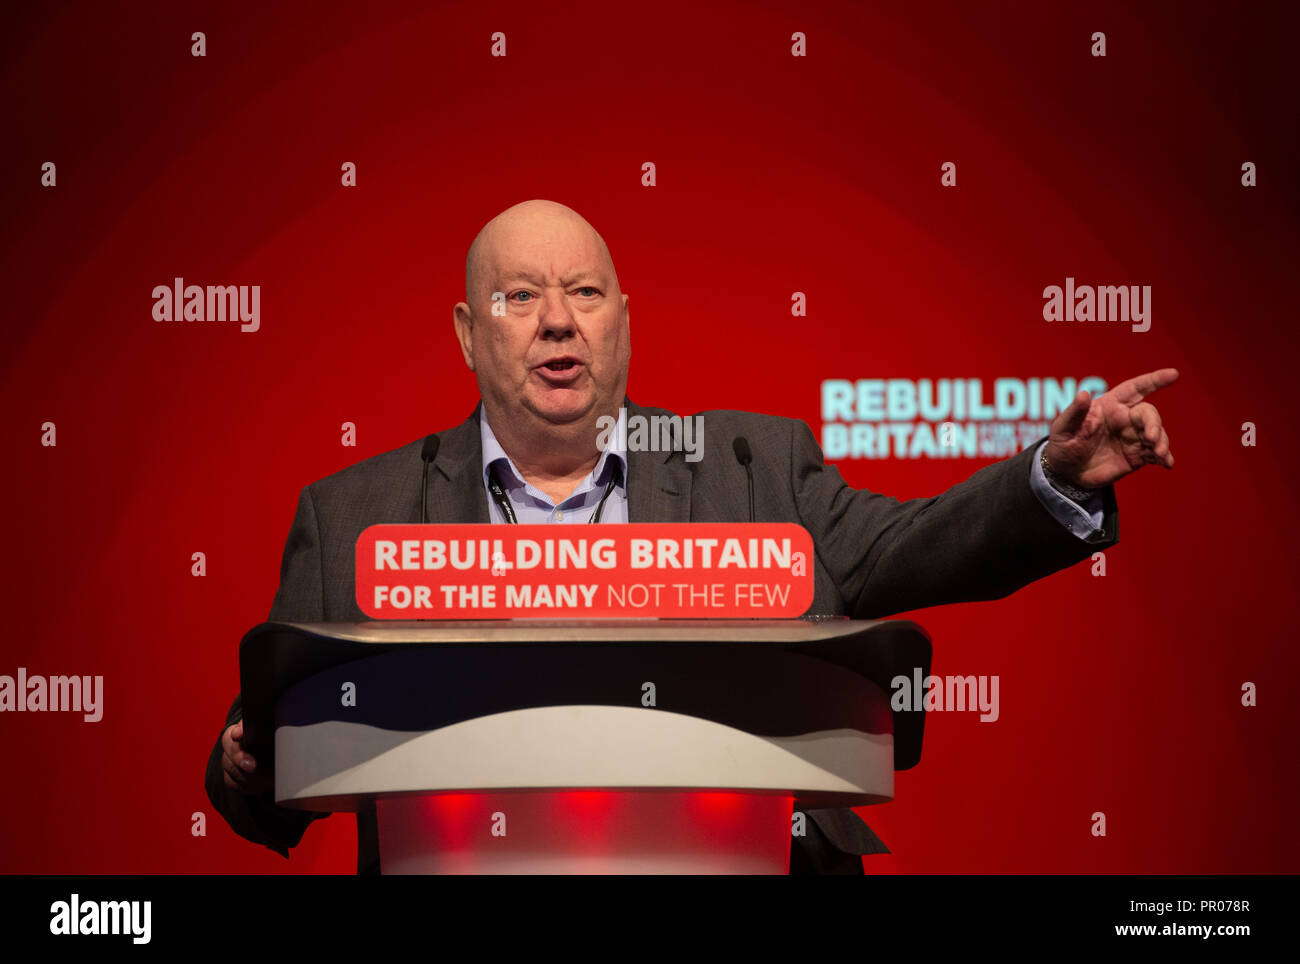 Mayor of Liverpool, Joe Anderson, speaking at the Labour Party Conference in Liverpool. - Stock Image